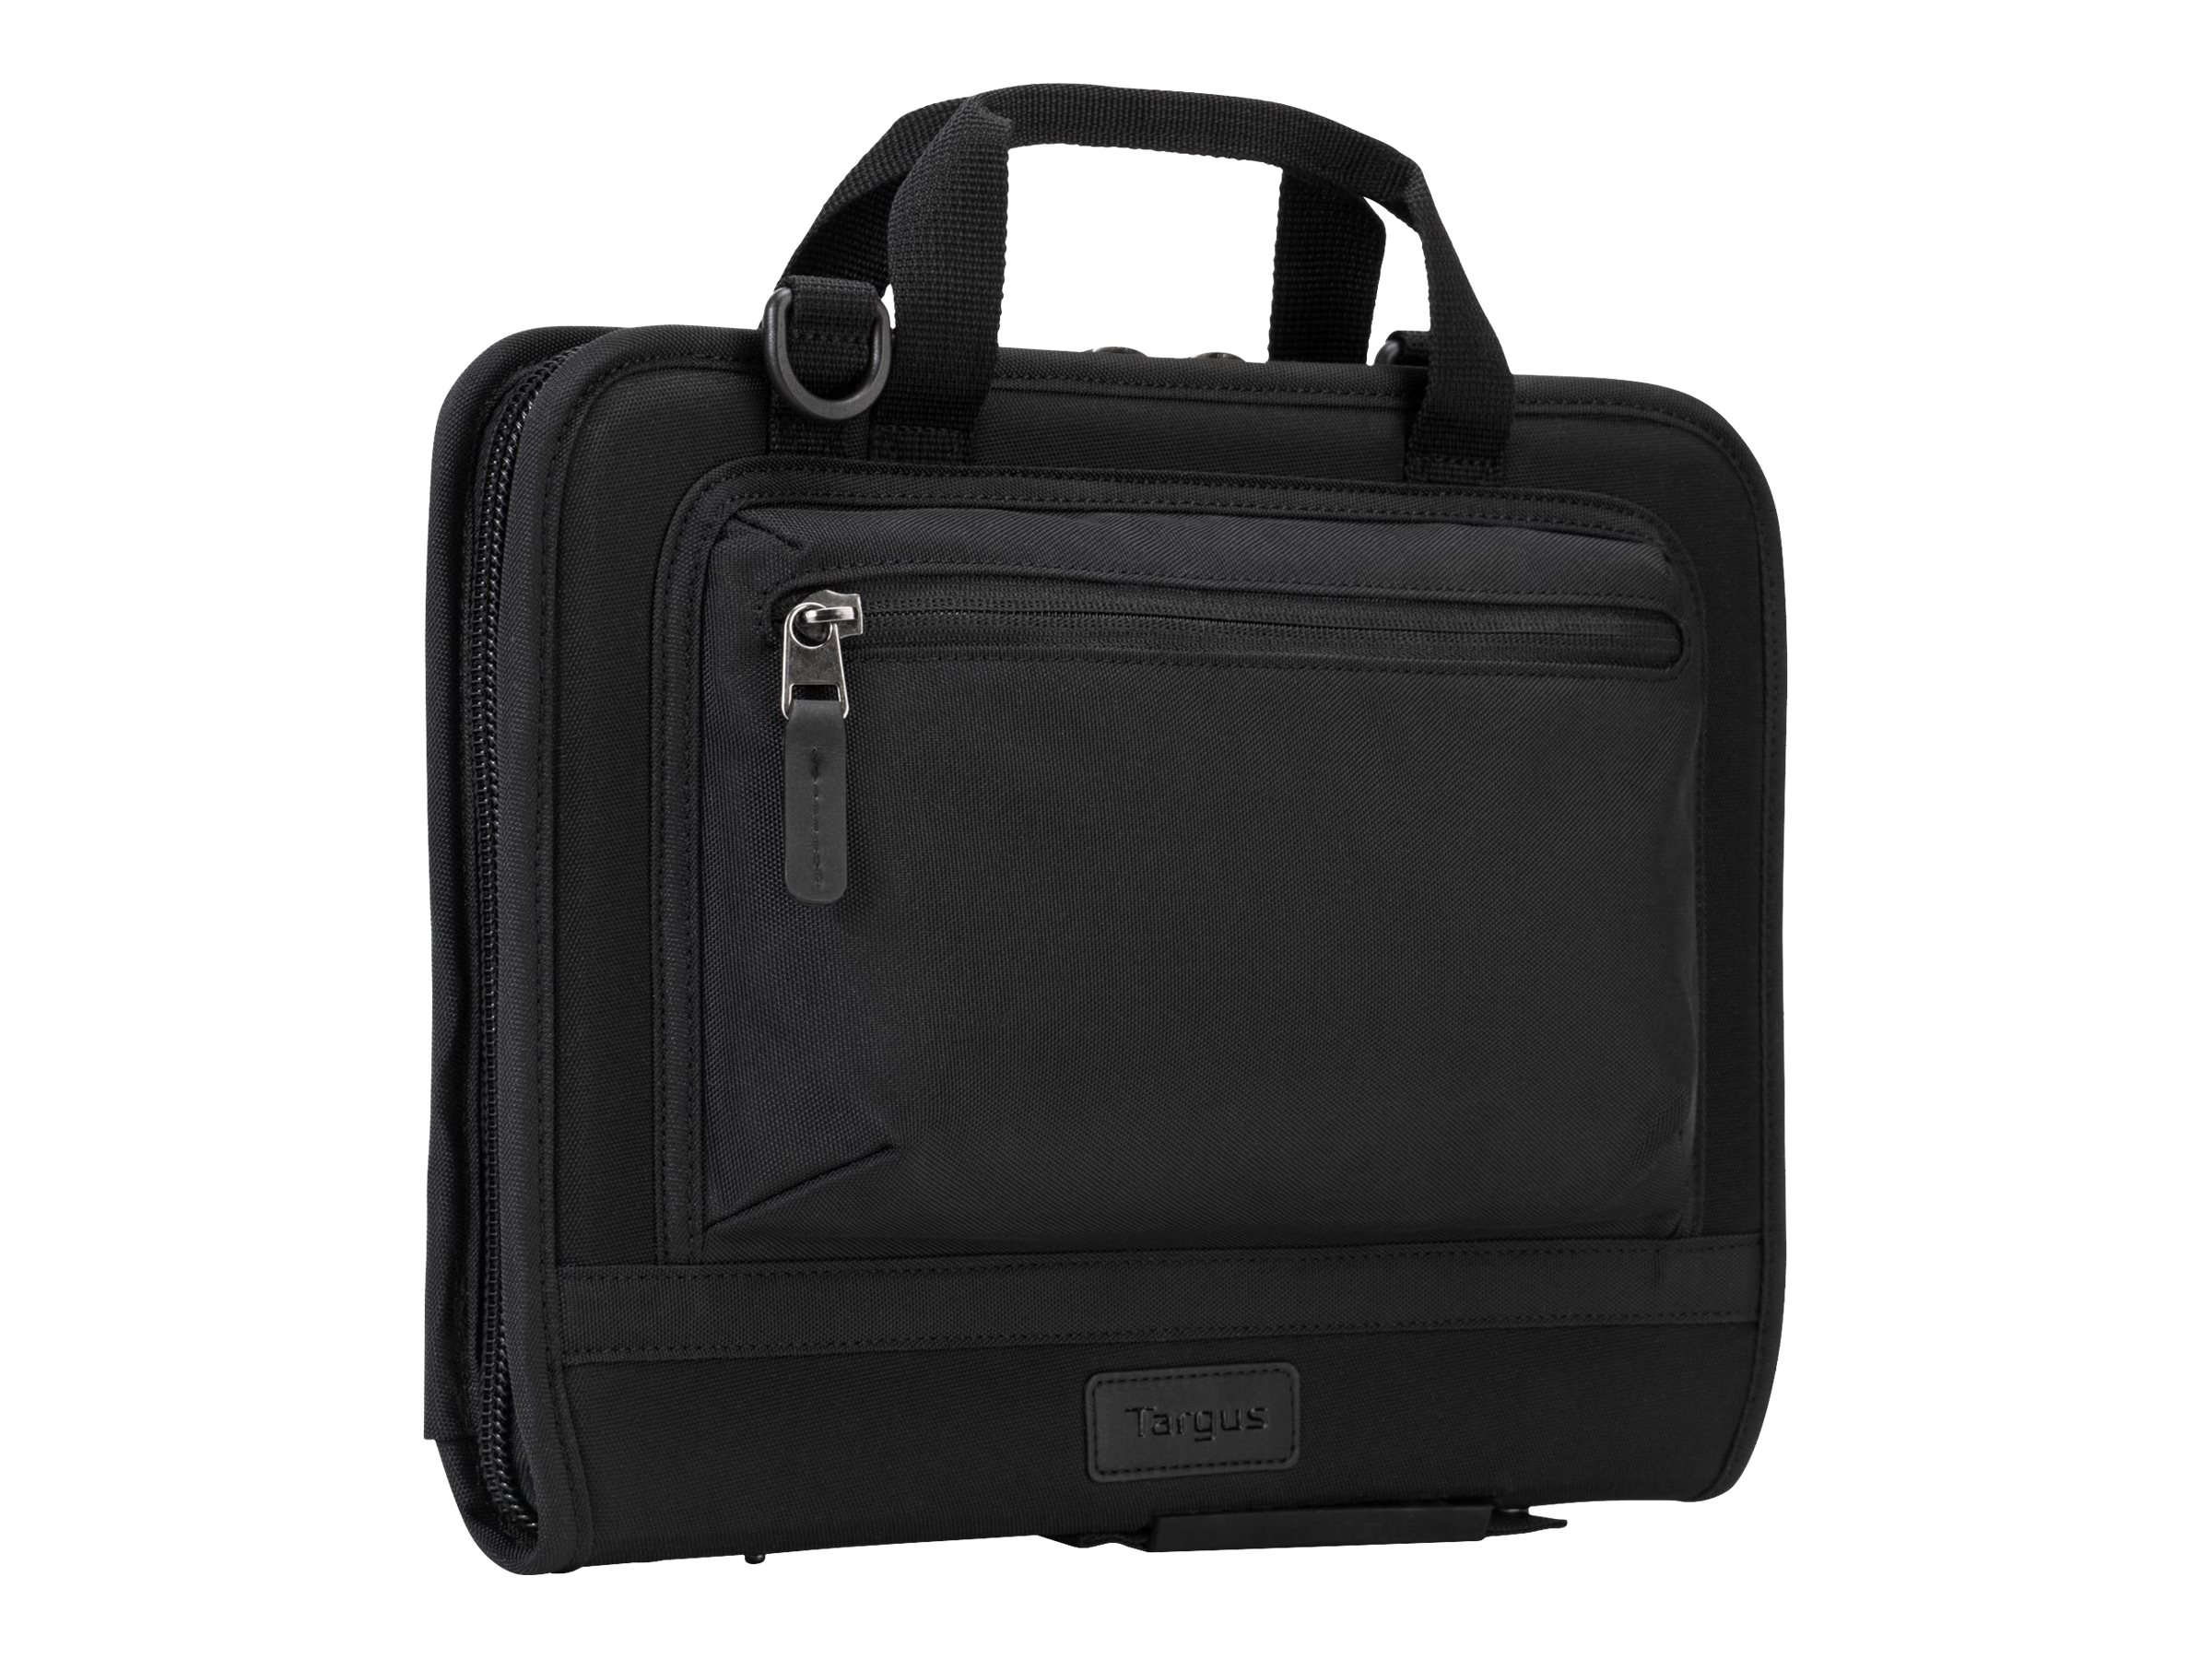 Targus 13.3 Rugged Work-in Chromebook Case, Black, TKC006